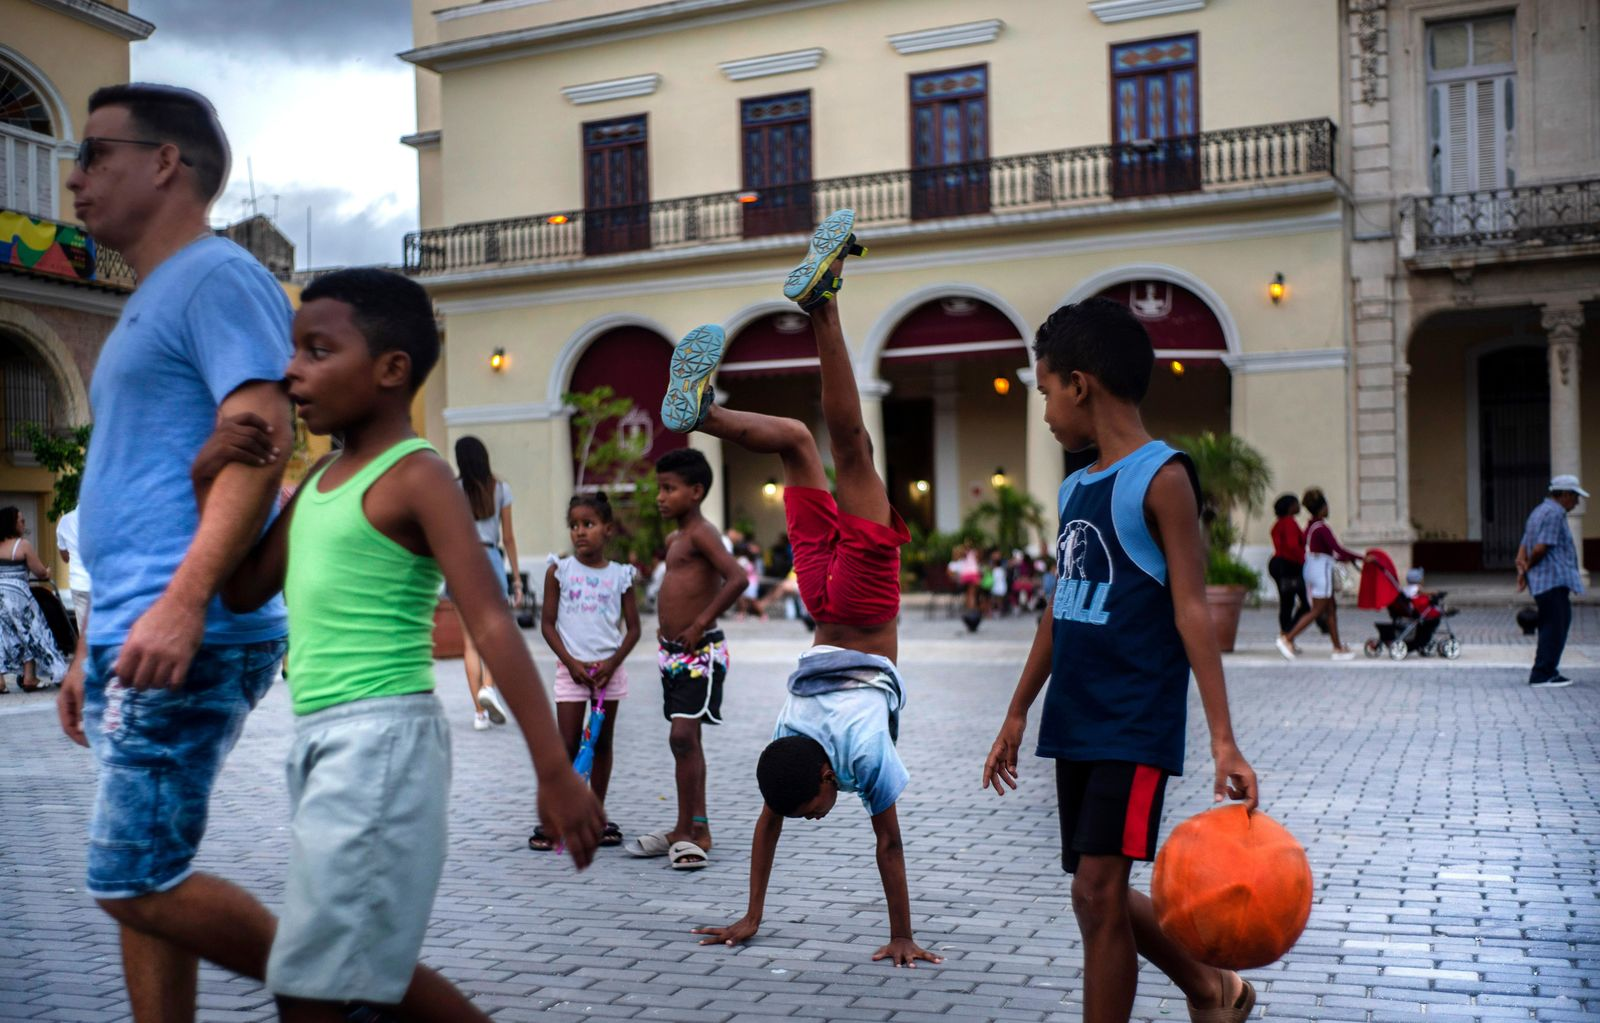 In this Nov. 10, 2019 photo, a youth does hand stands amid pedestrians in a square in Old Havana, Cuba. The city will celebrate its 500th anniversary on Nov. 16. (AP Photo/Ramon Espinosa)